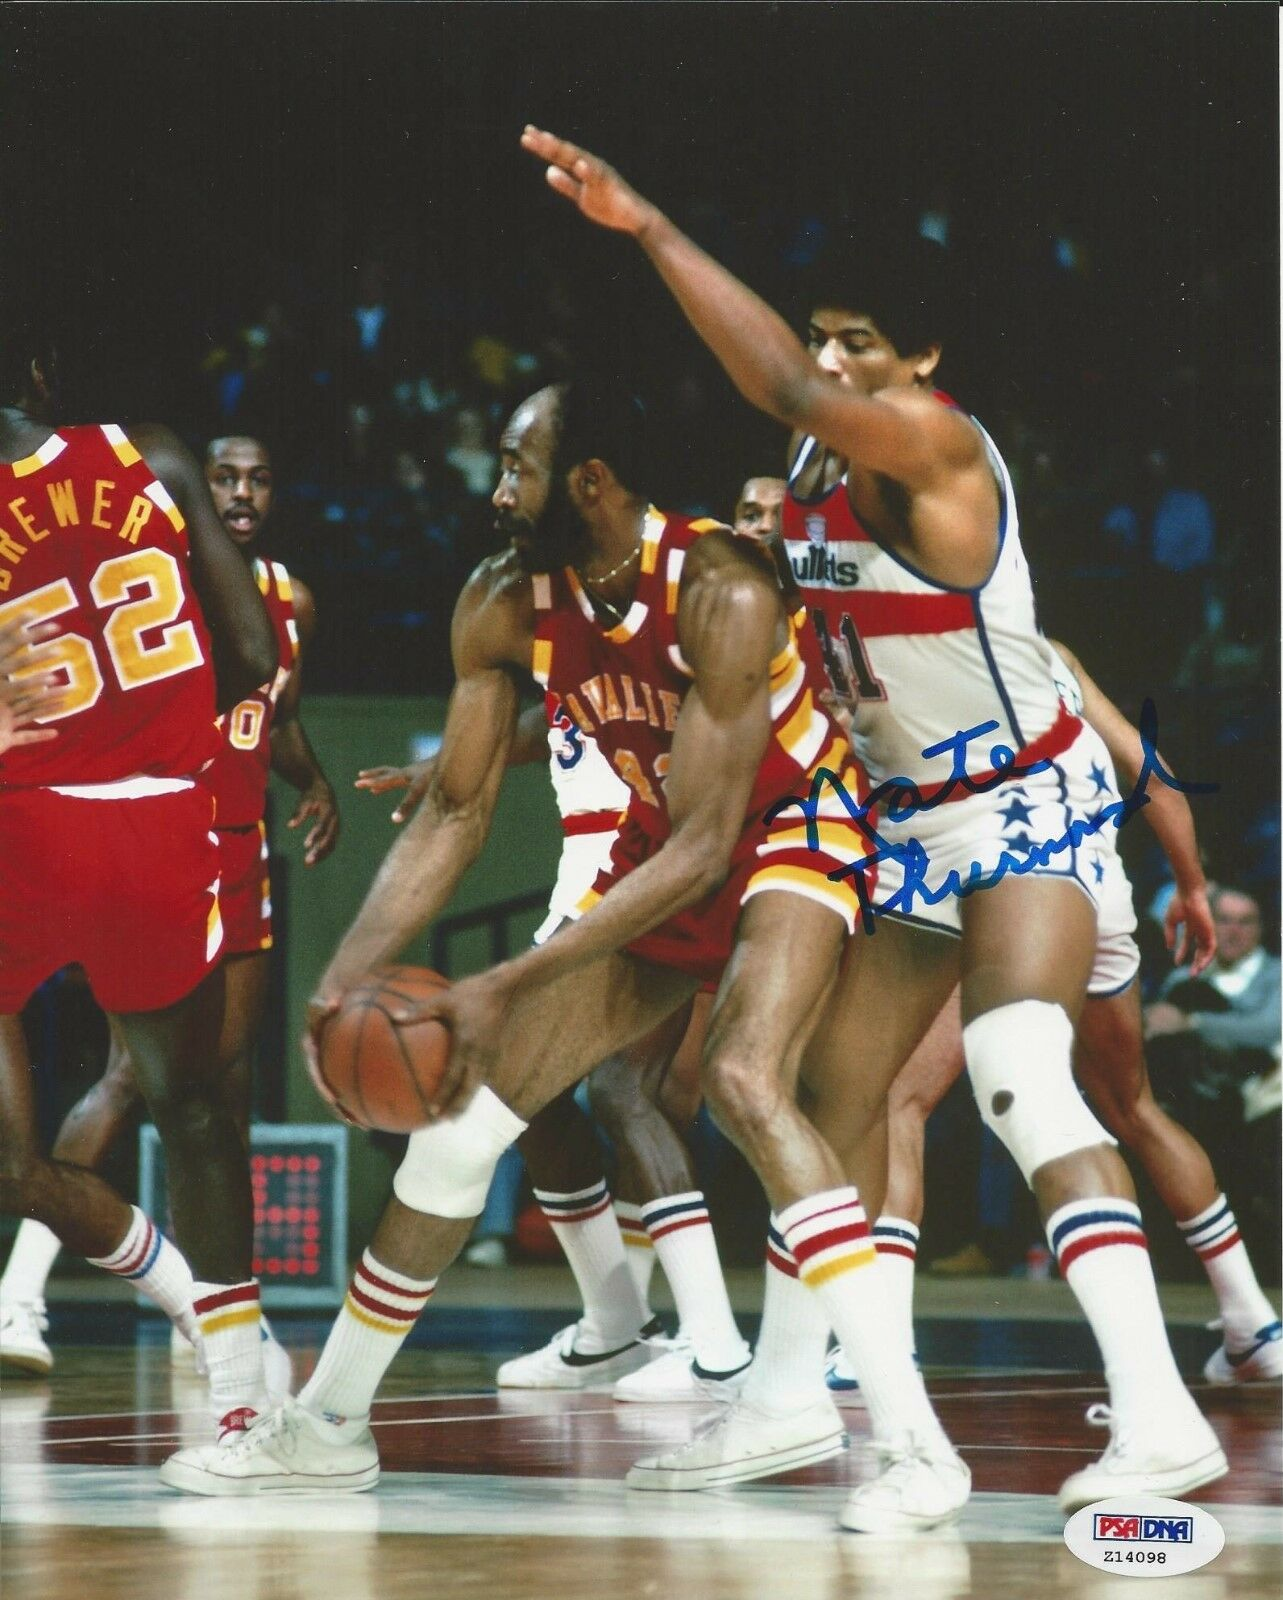 Nate Thurmond Signed Autographed Cavaliers 8x10 Photo PSA/DNA # Z14098